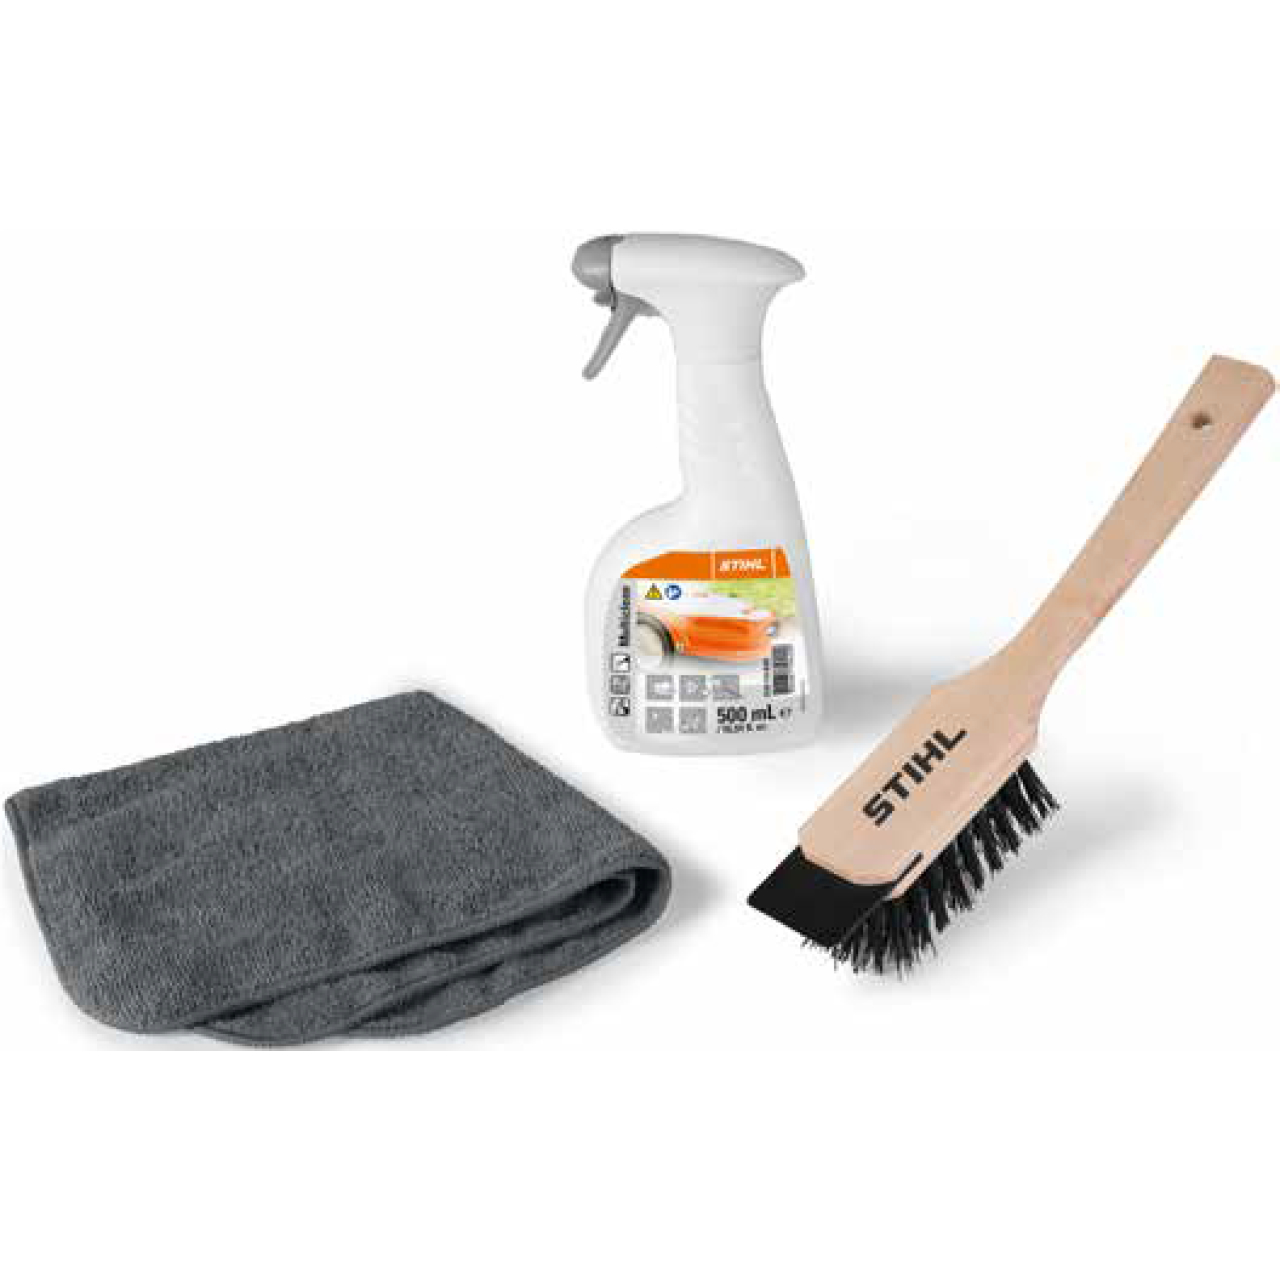 iMOW® Clean & Care Kit